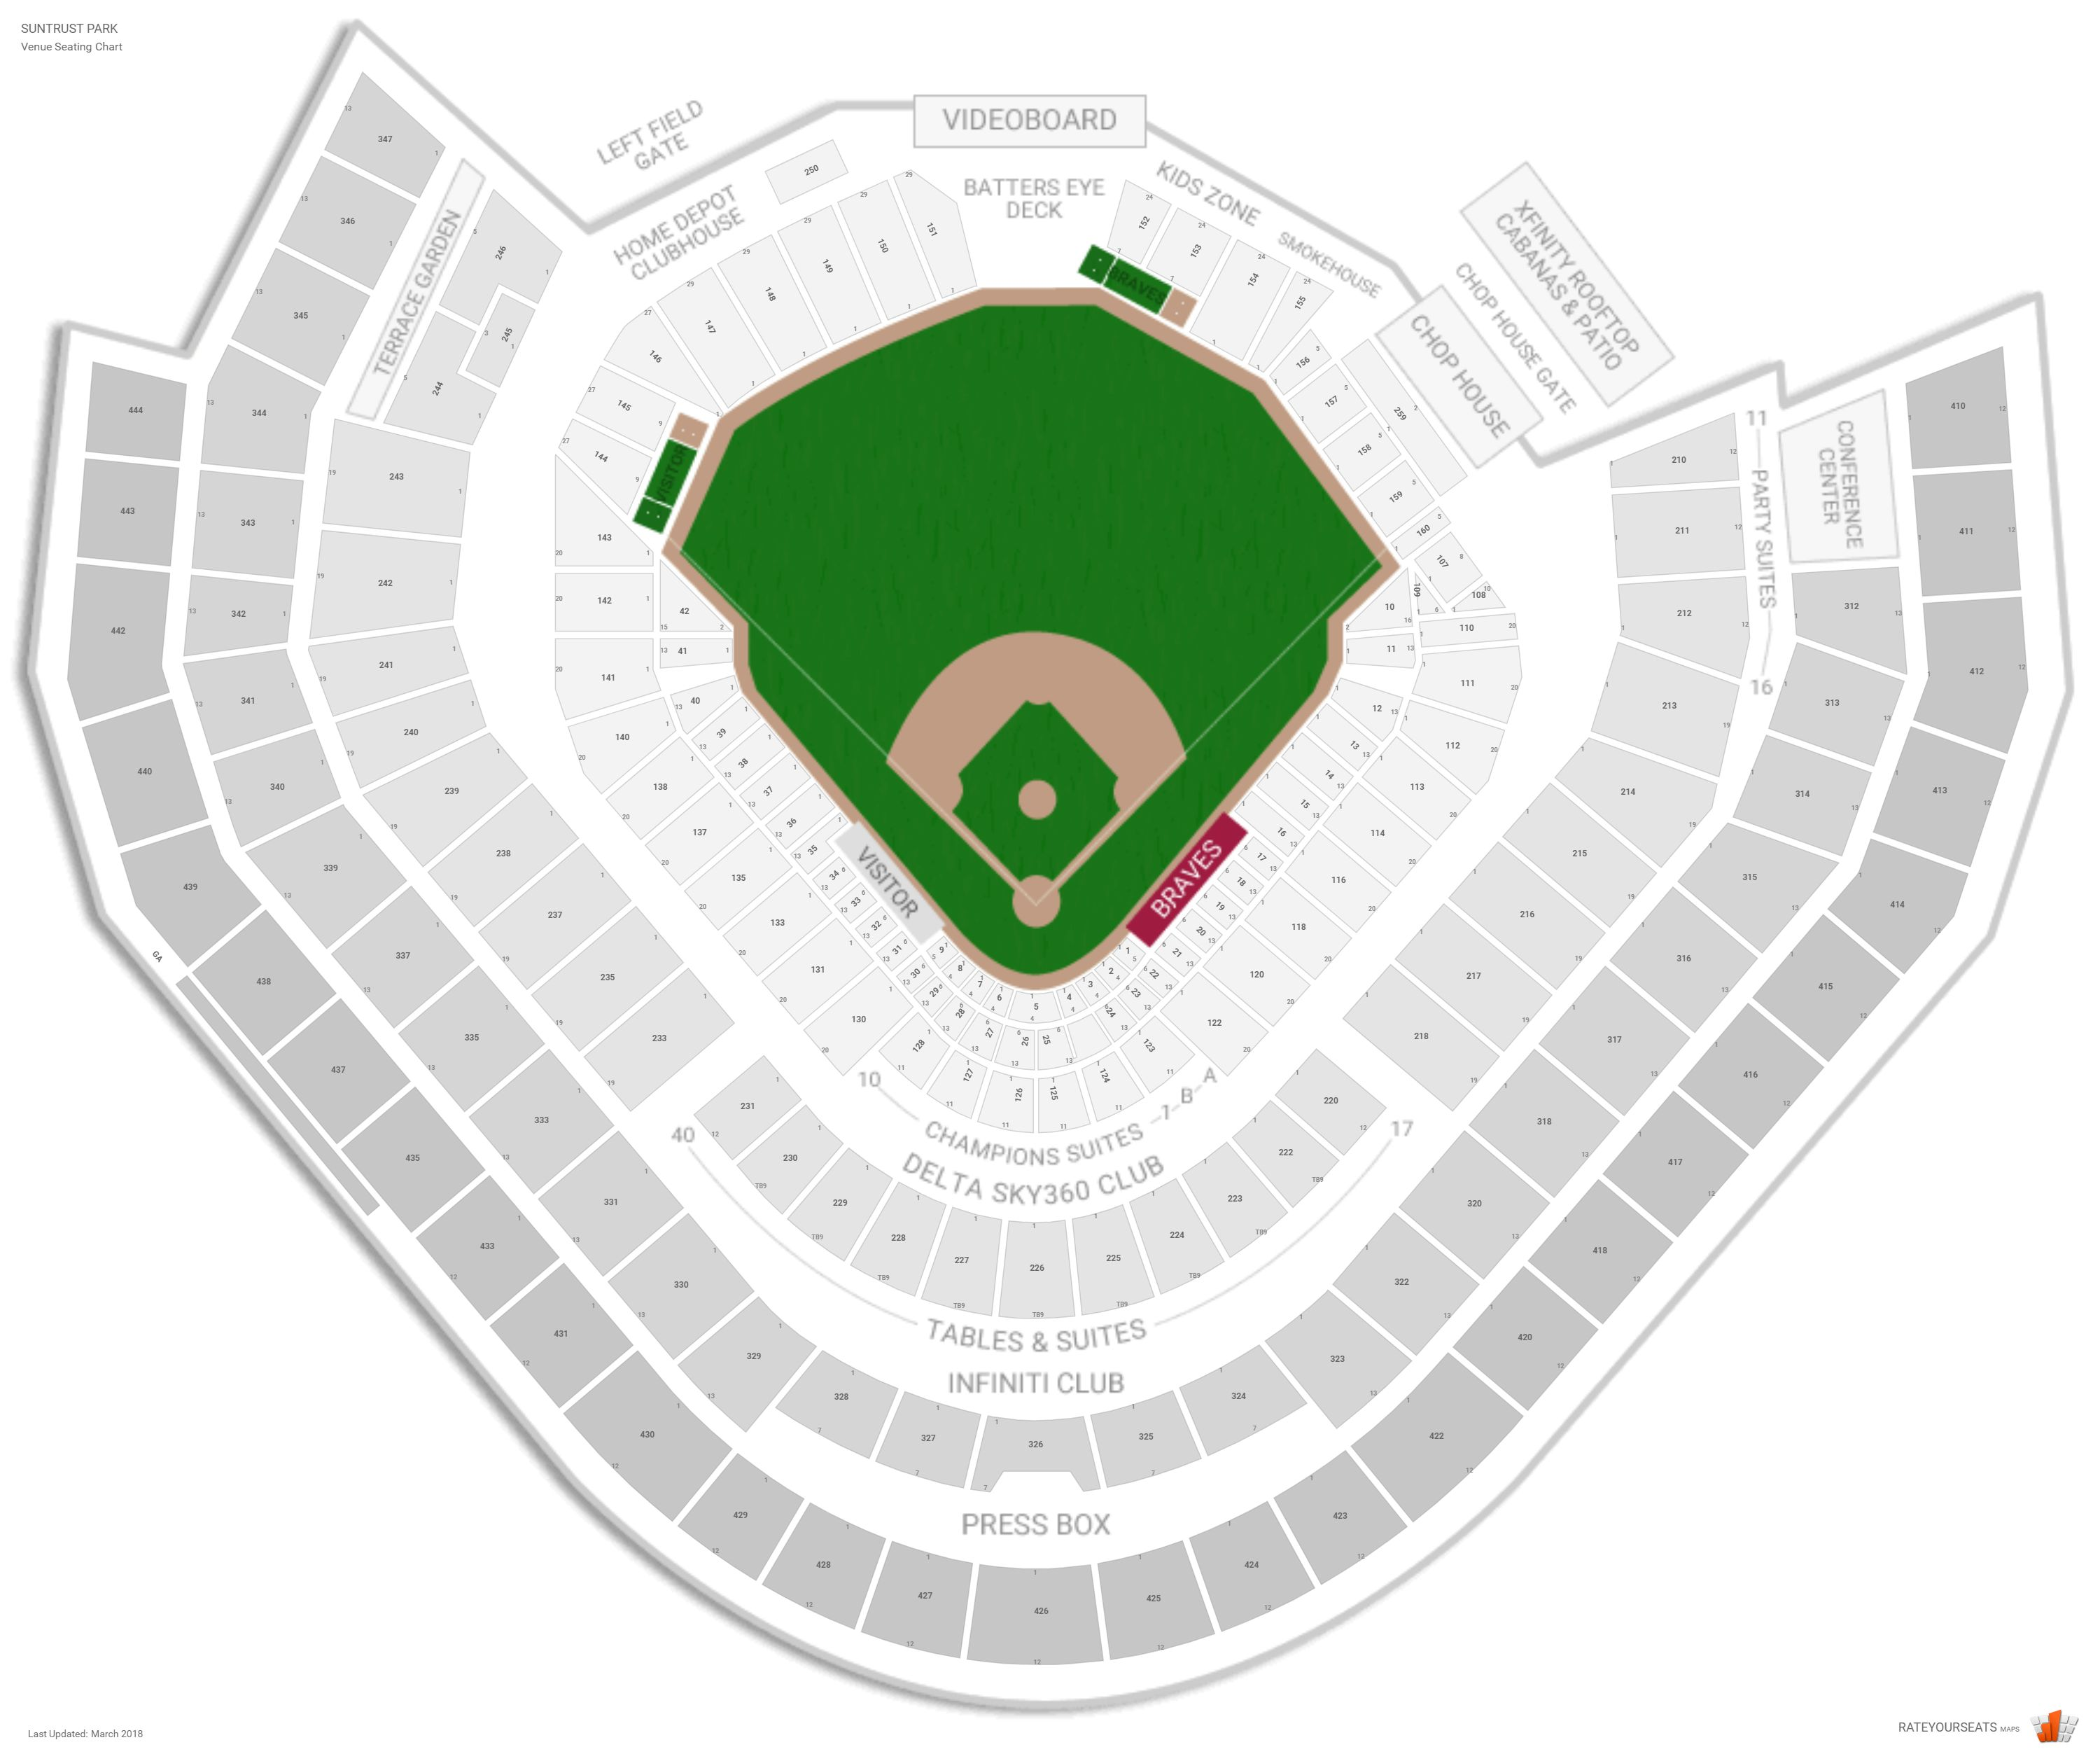 Suntrust Park Seating Chart With Row Numbers